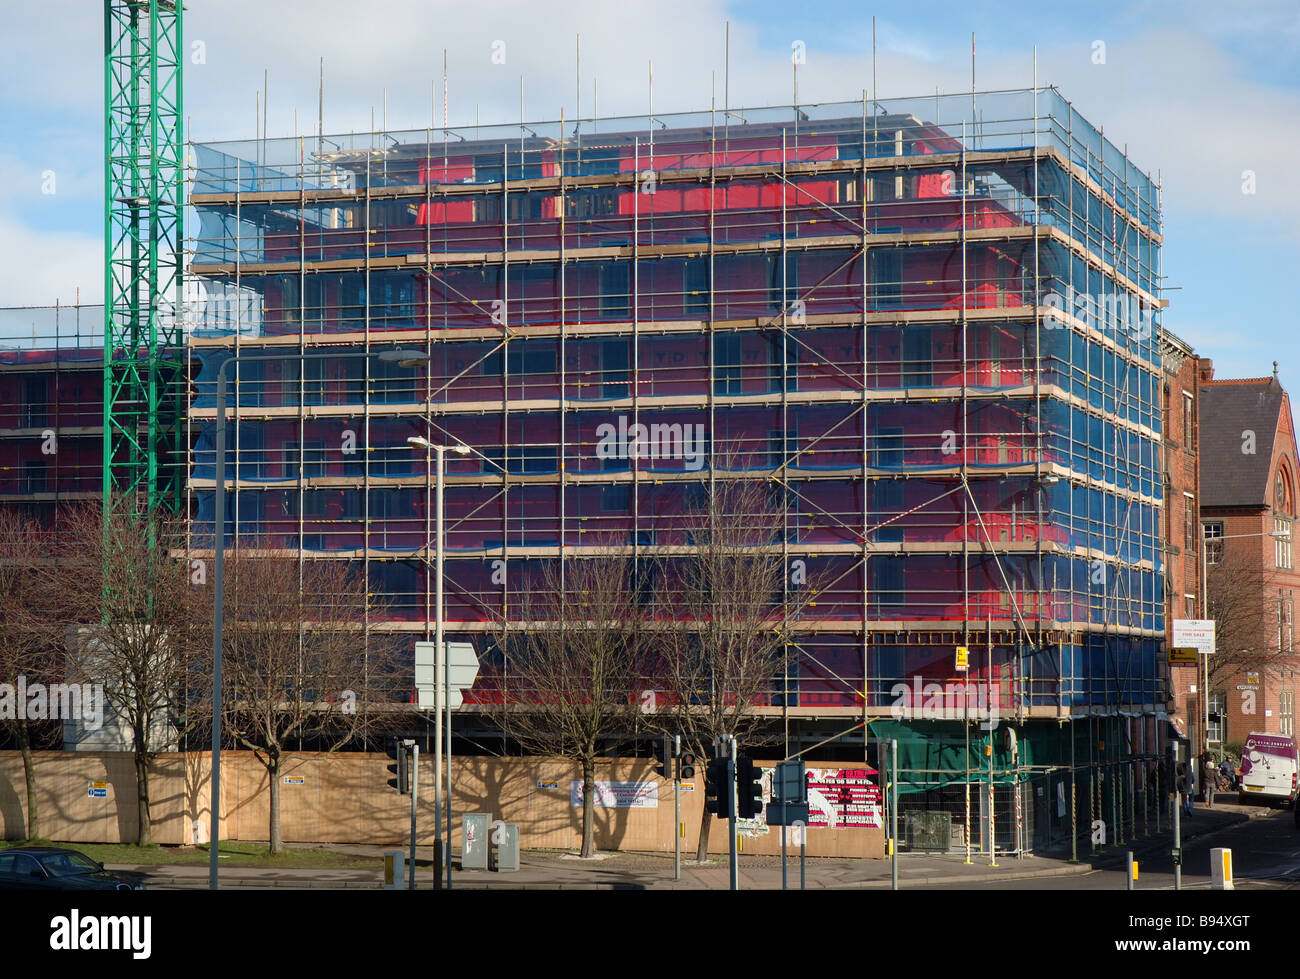 scaffolding around construction site, Leicester, England, UK - Stock Image